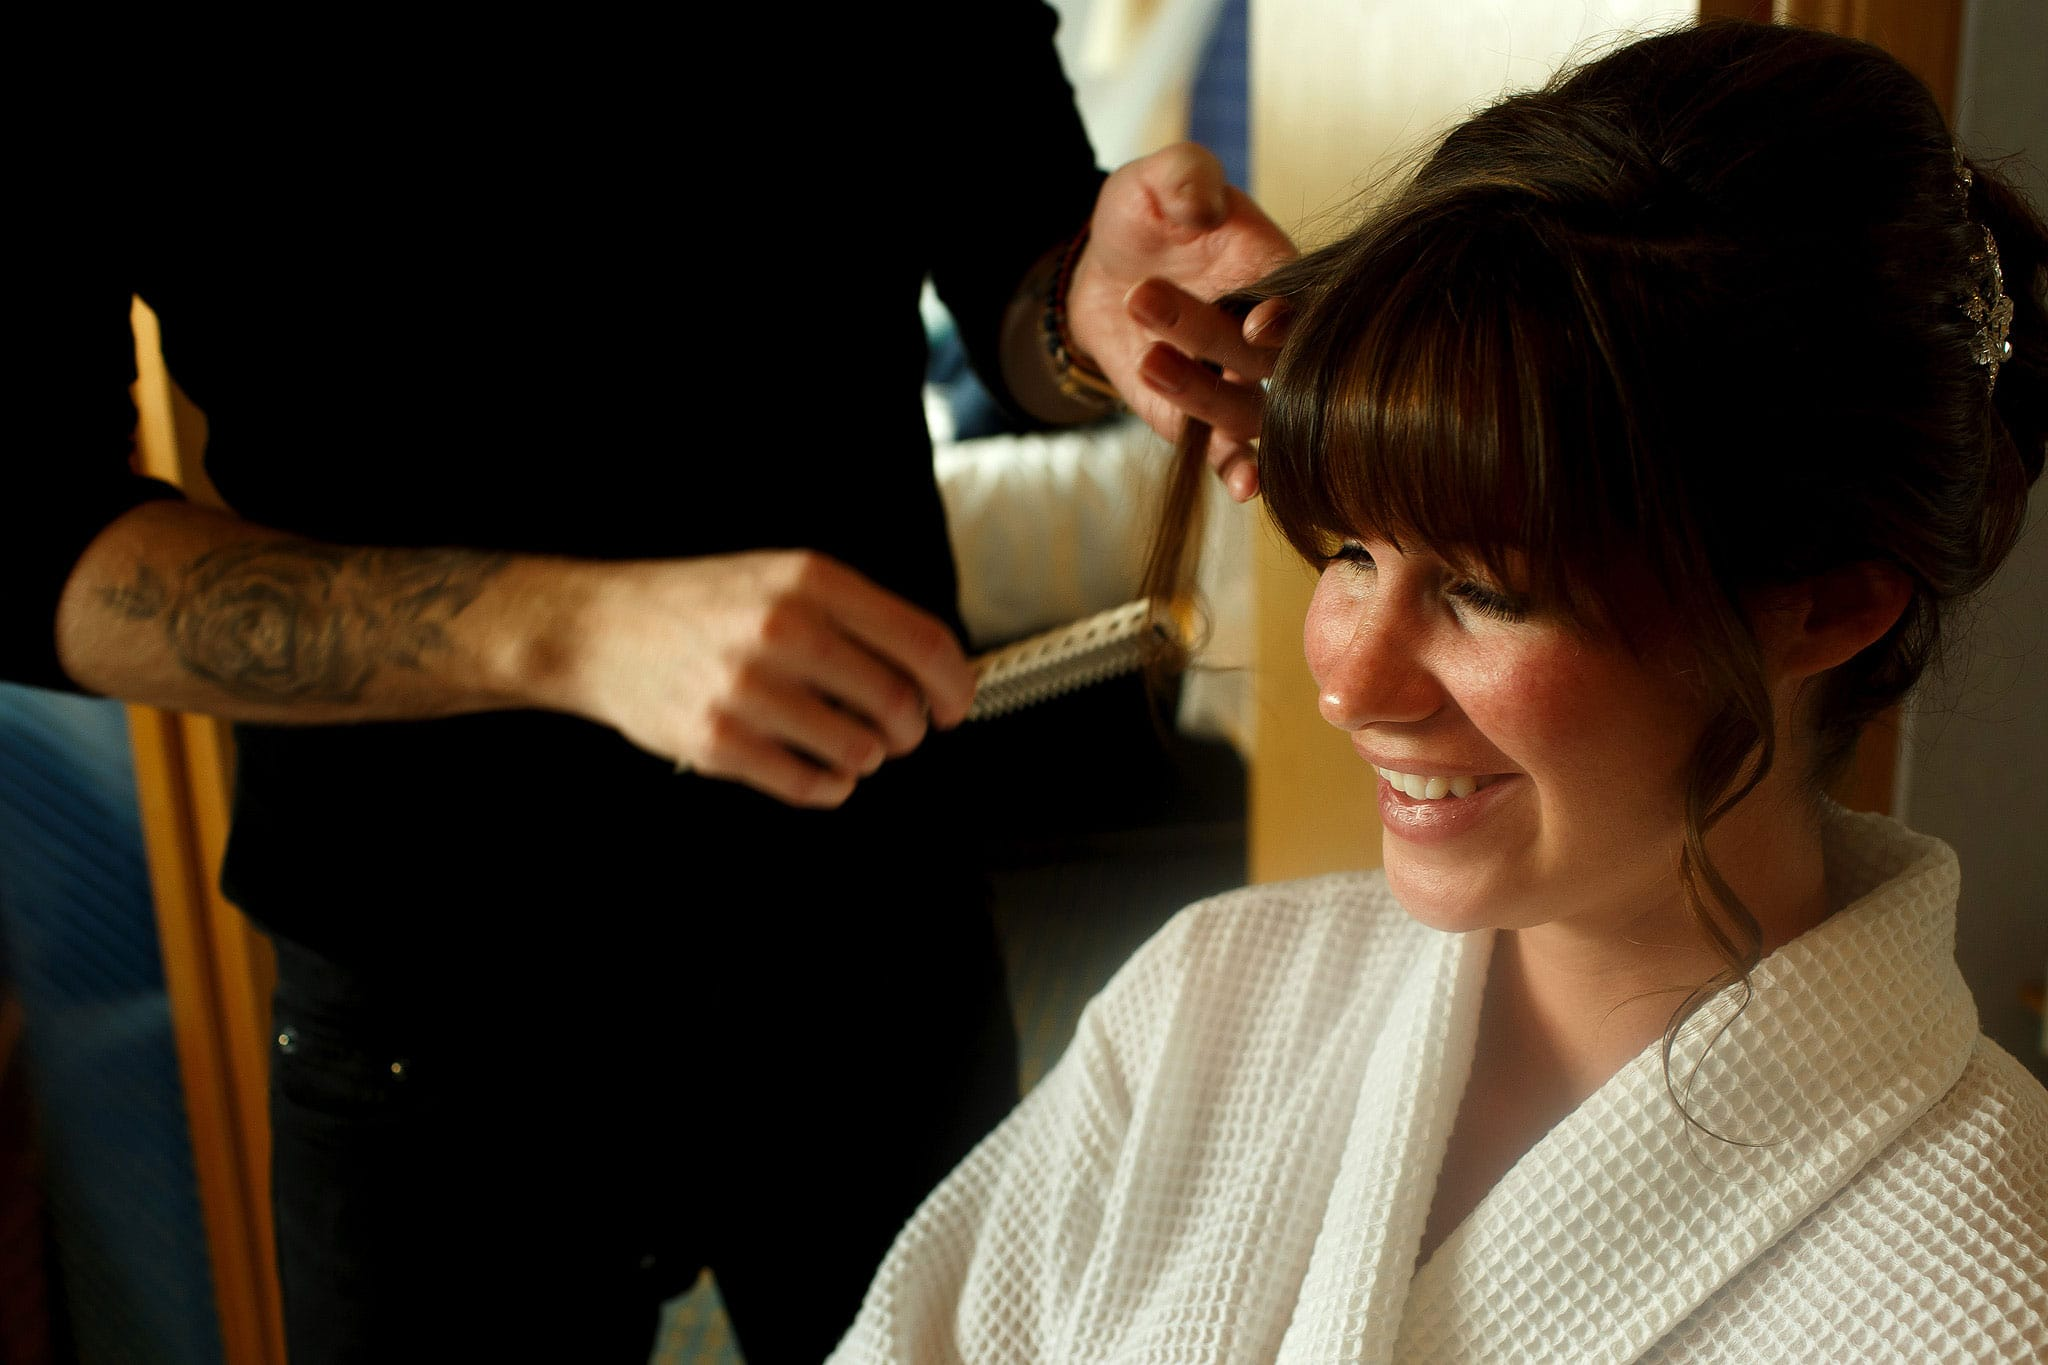 Brunette bride with full fringe having hair piece applied during bridal preparations